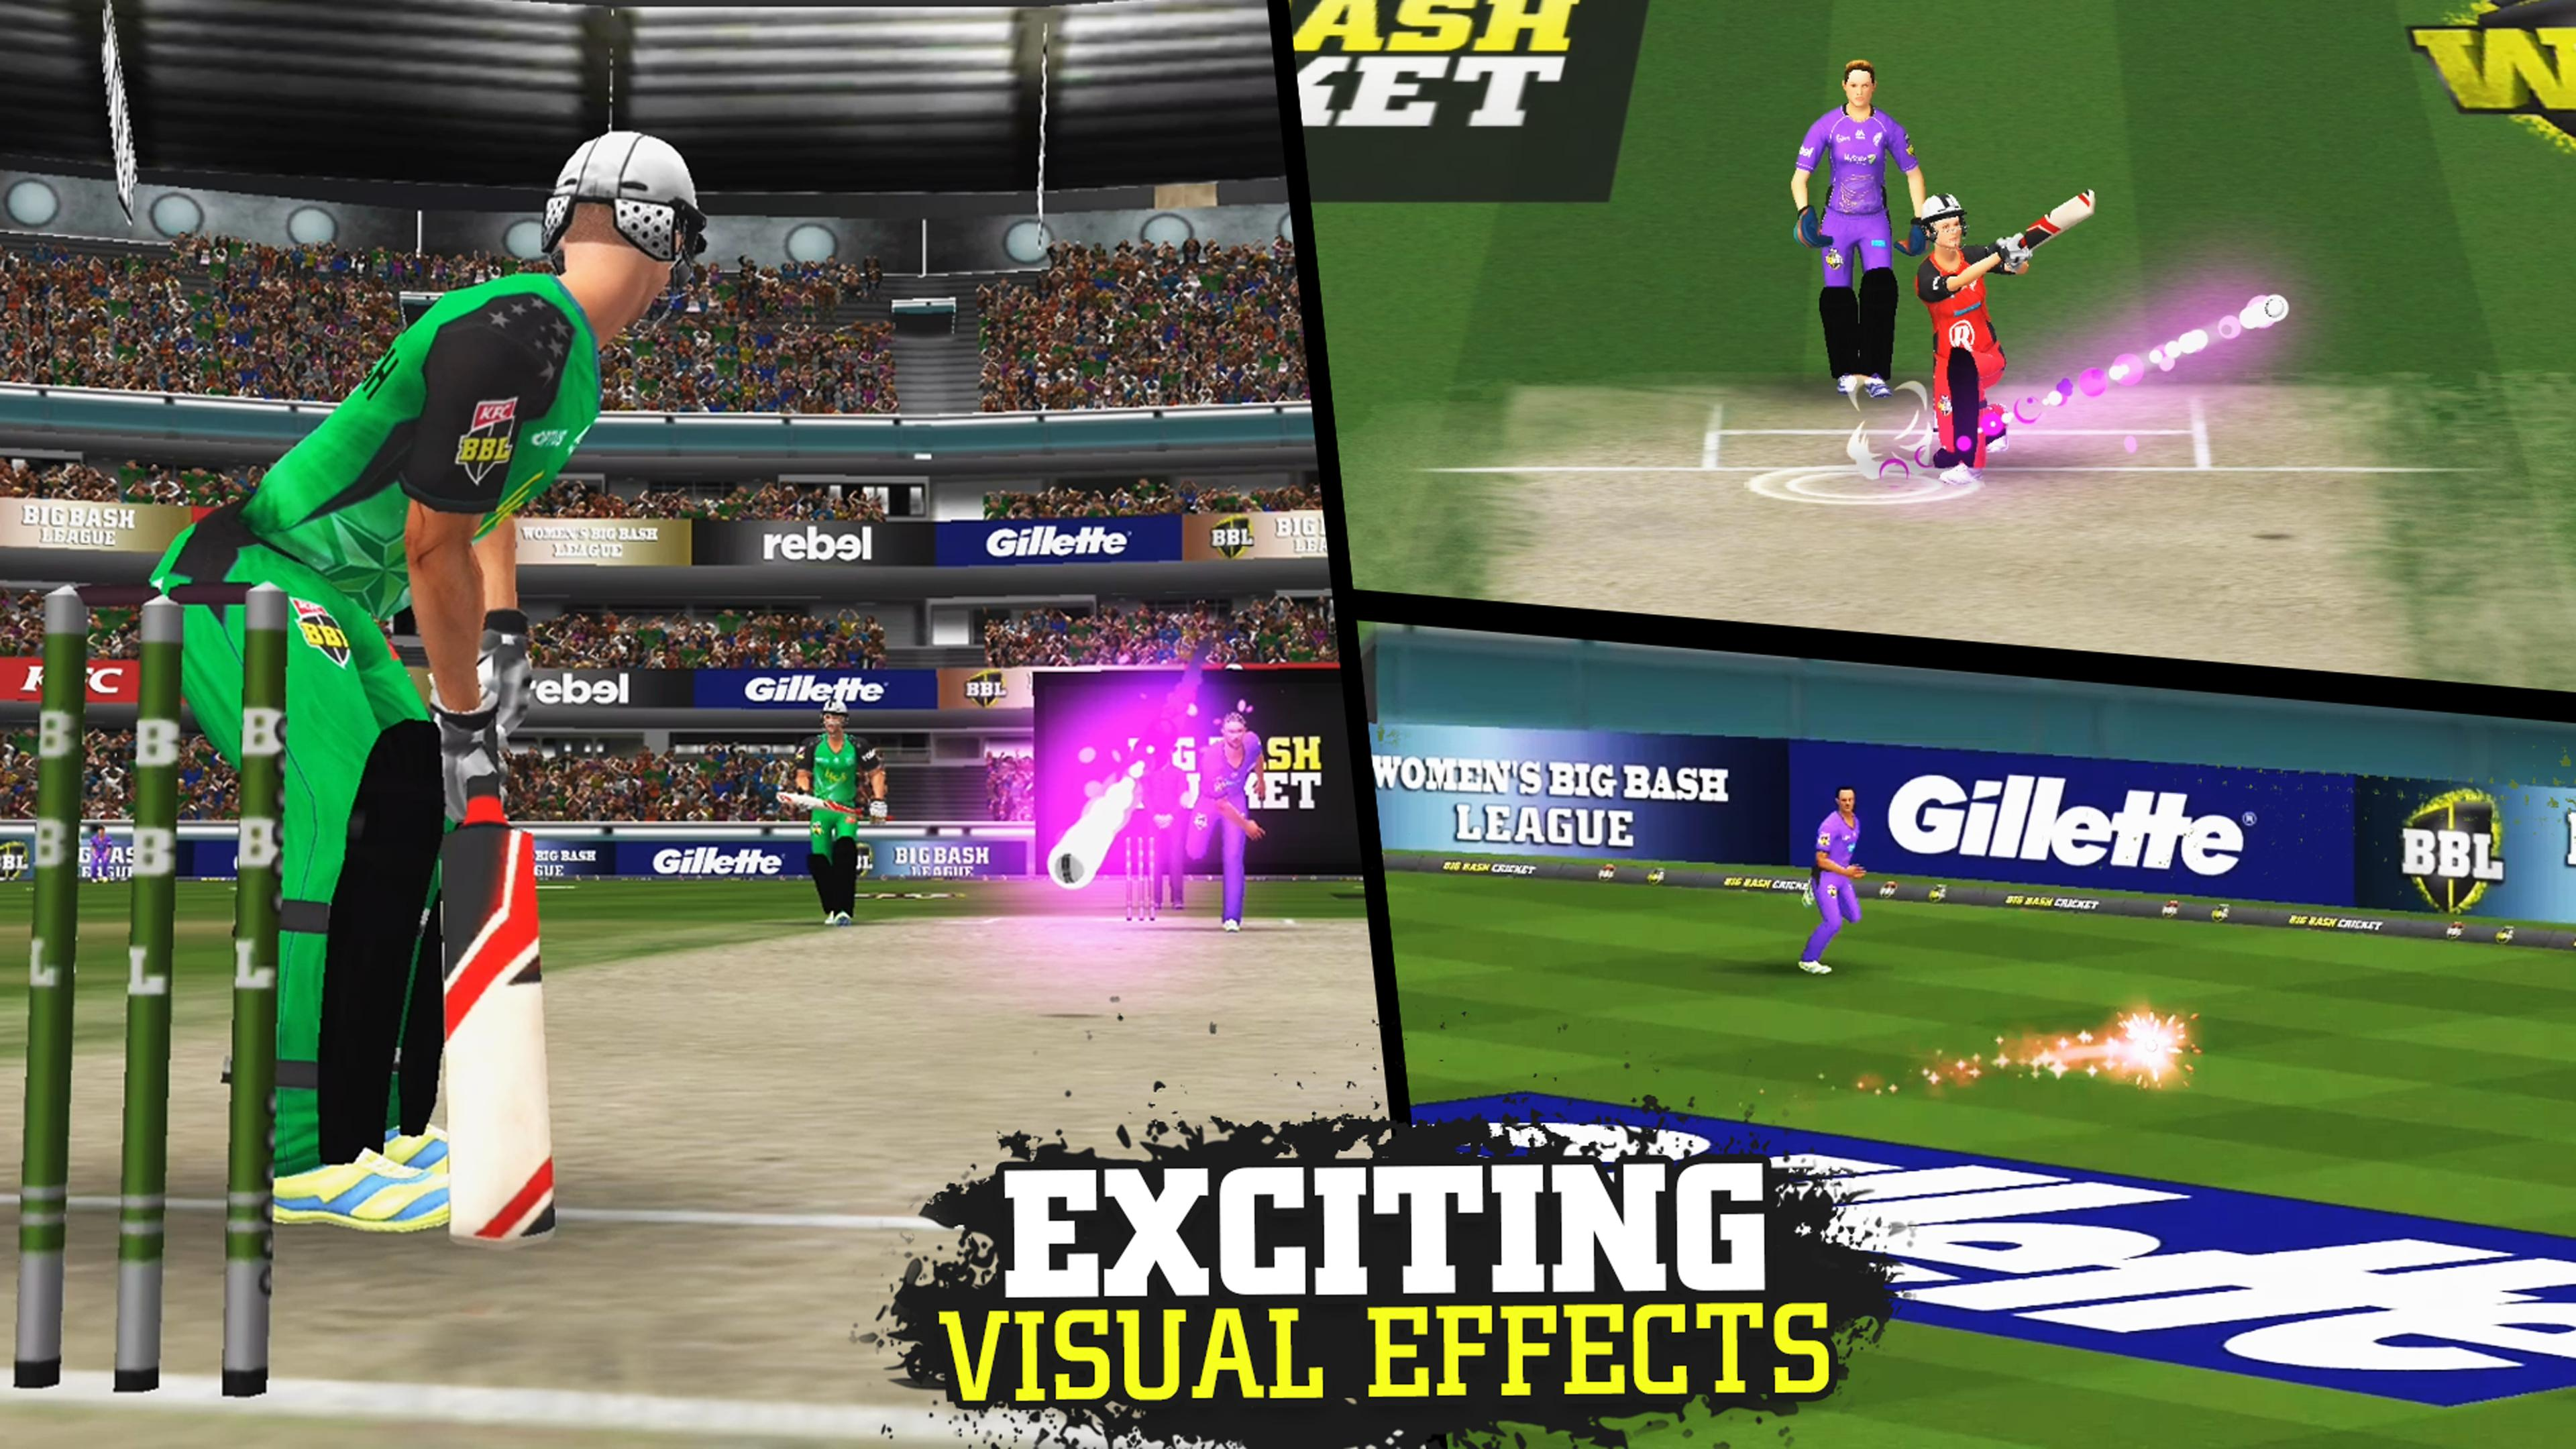 Big Bash Cricket for Android - APK Download